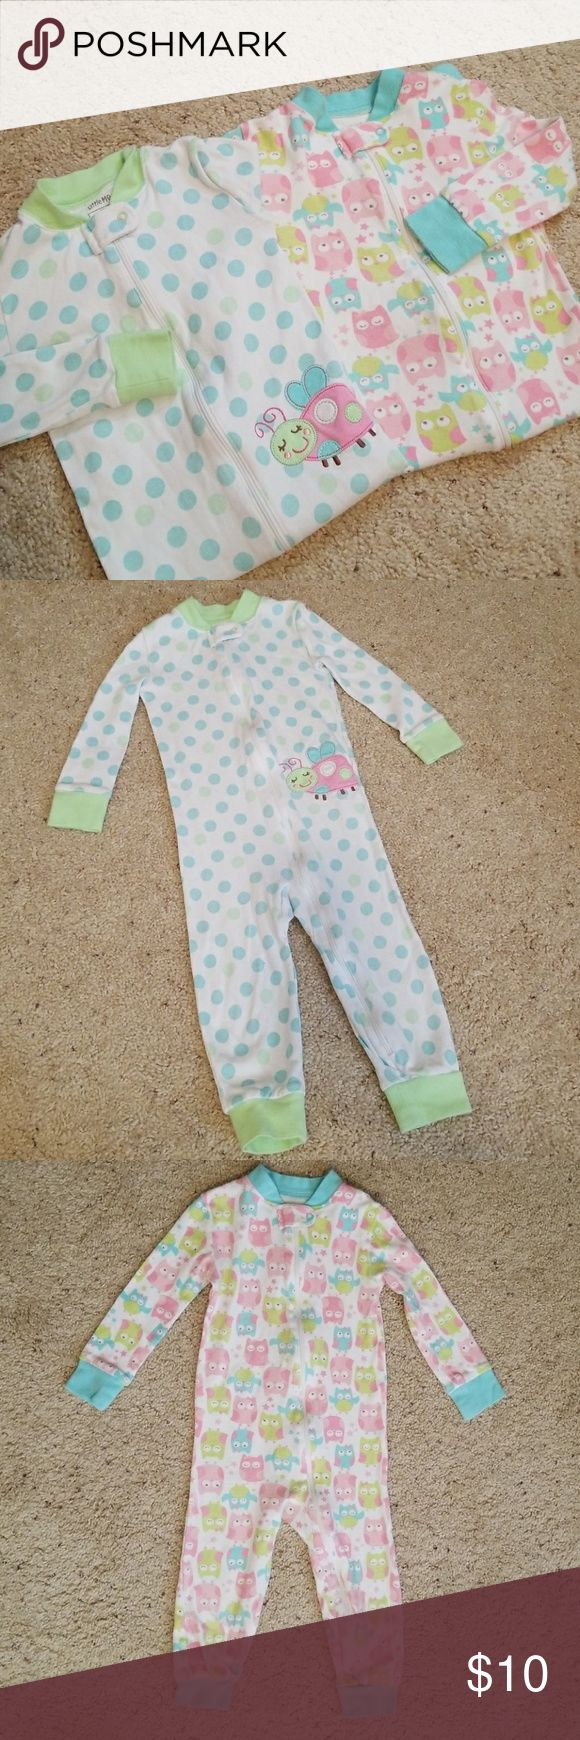 ✌Two Toddler PJ Onesies (Bundled) Cute and adorable Little Me onesies (two bundled), size 3T, pre-owned and in excellent condition (like new). Little Me One Pieces